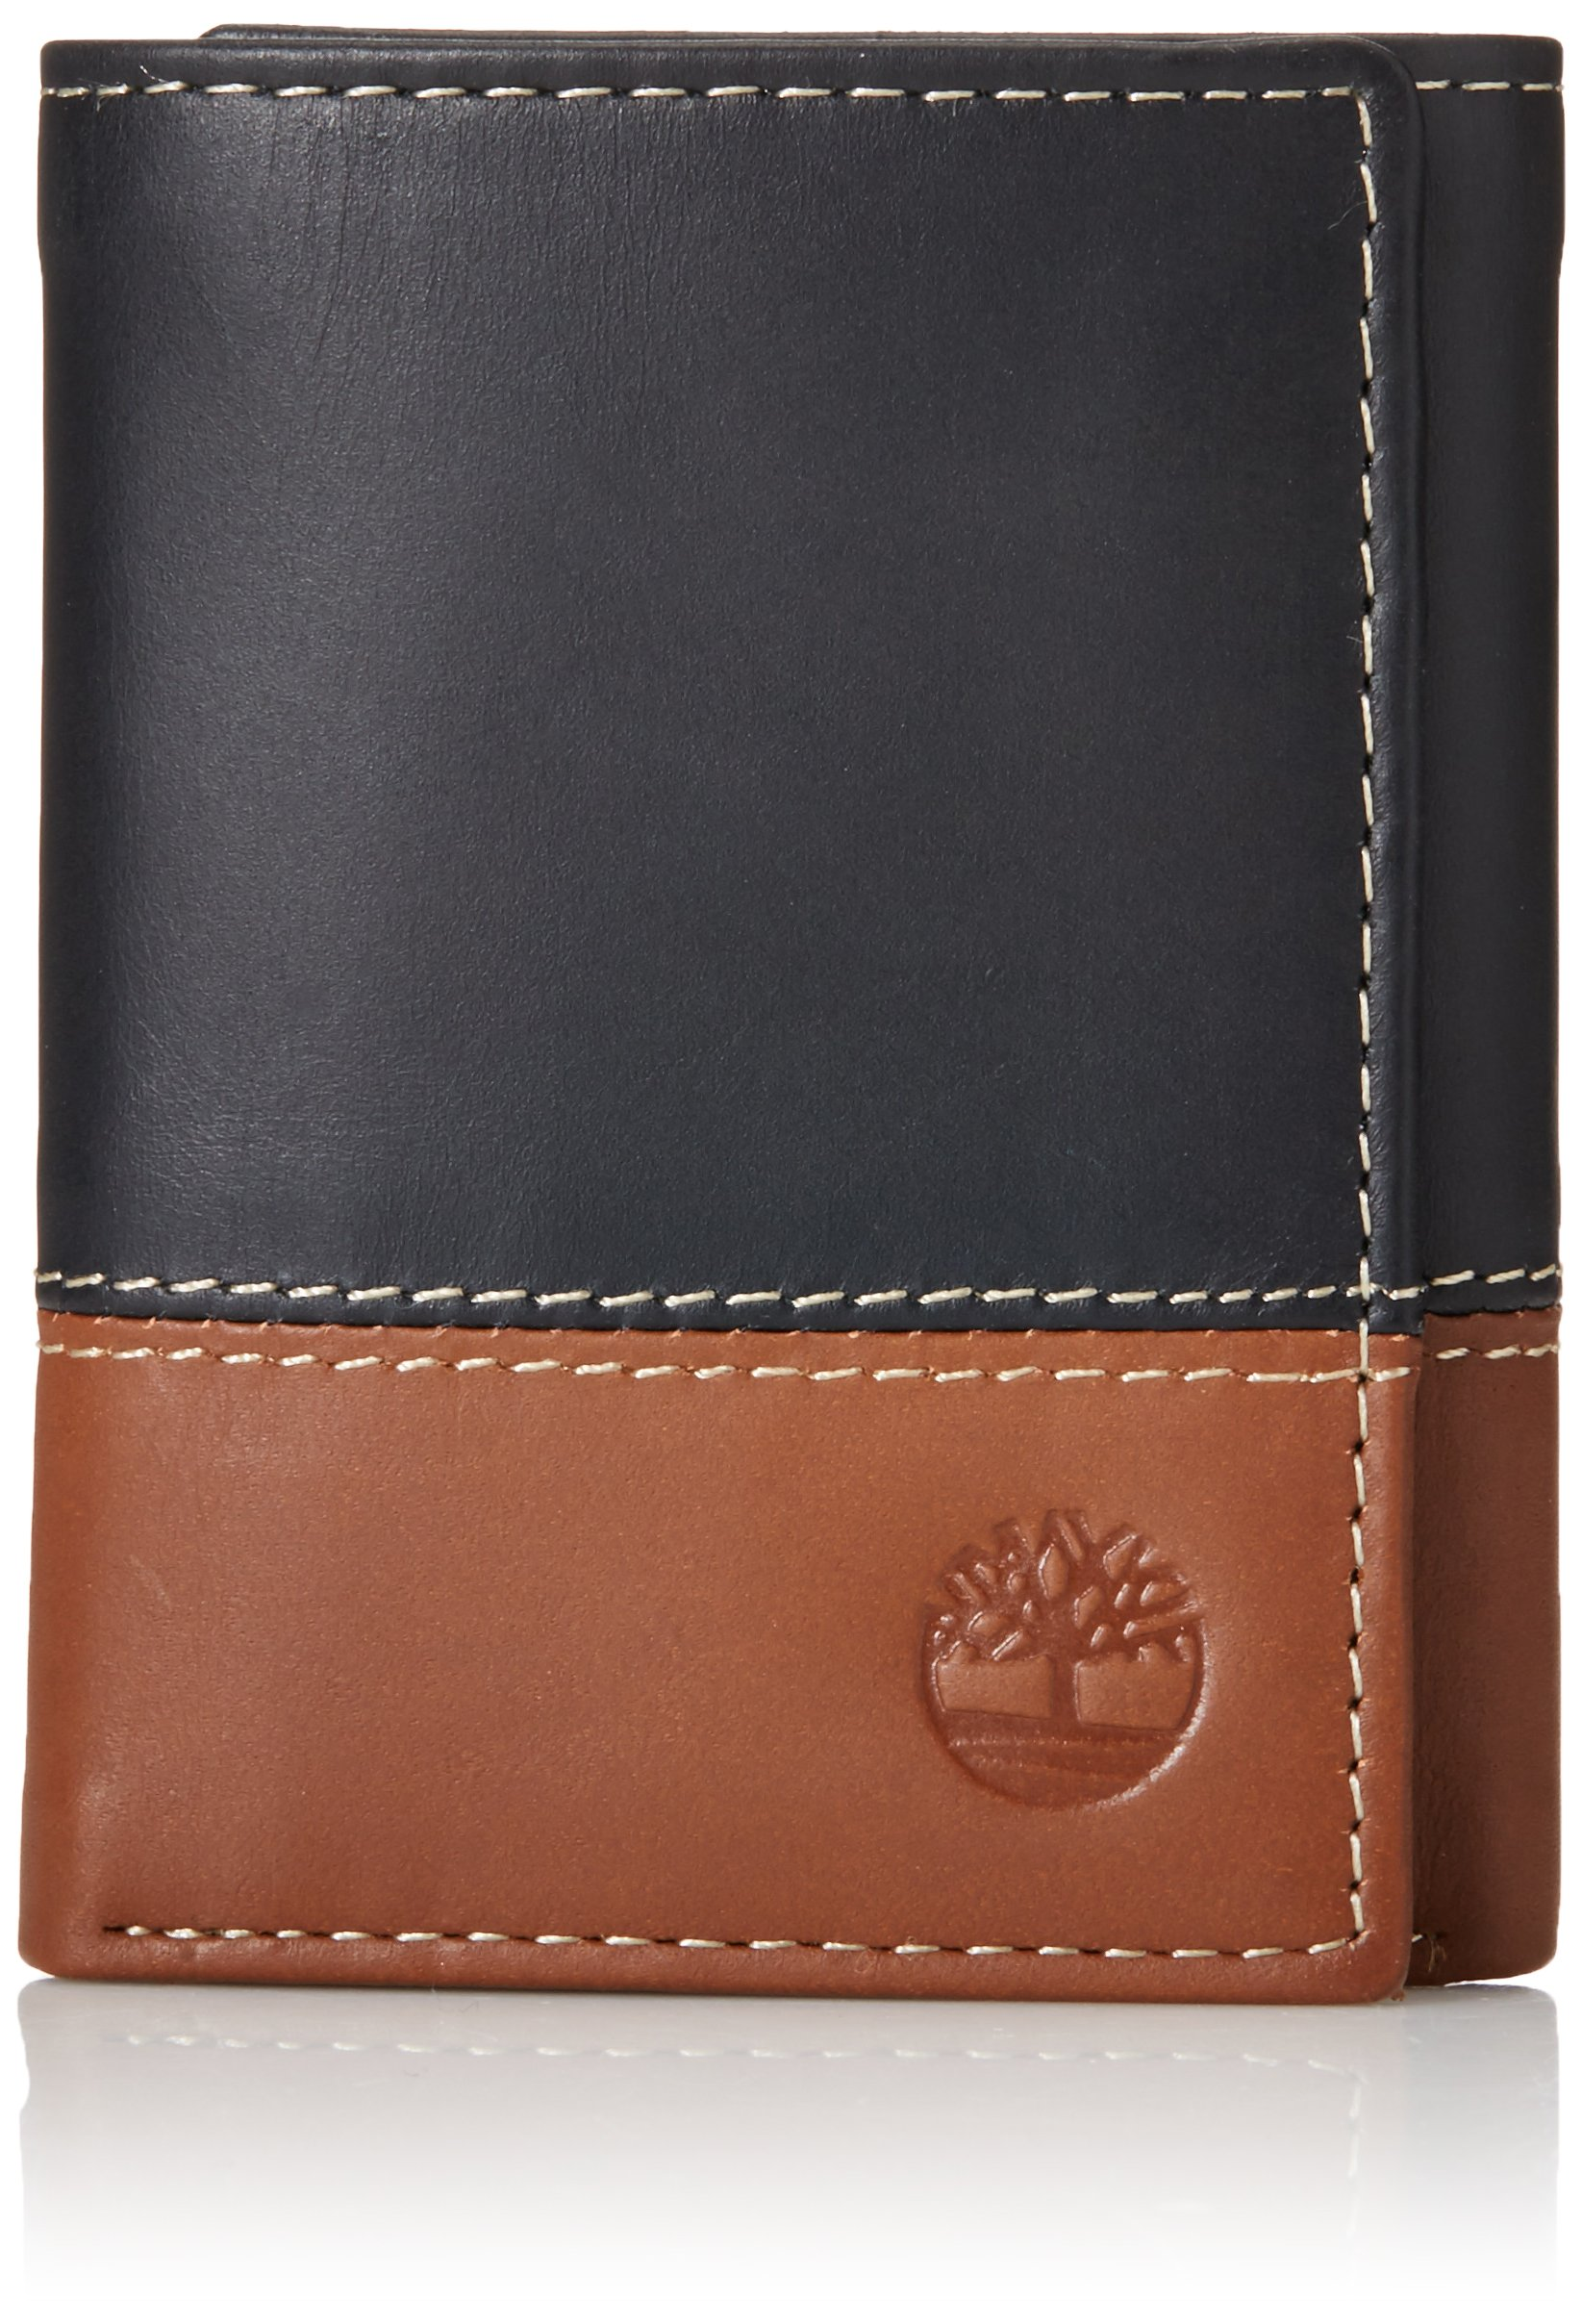 Timberland Mens Leather Trifold Wallet With ID Window by Timberland